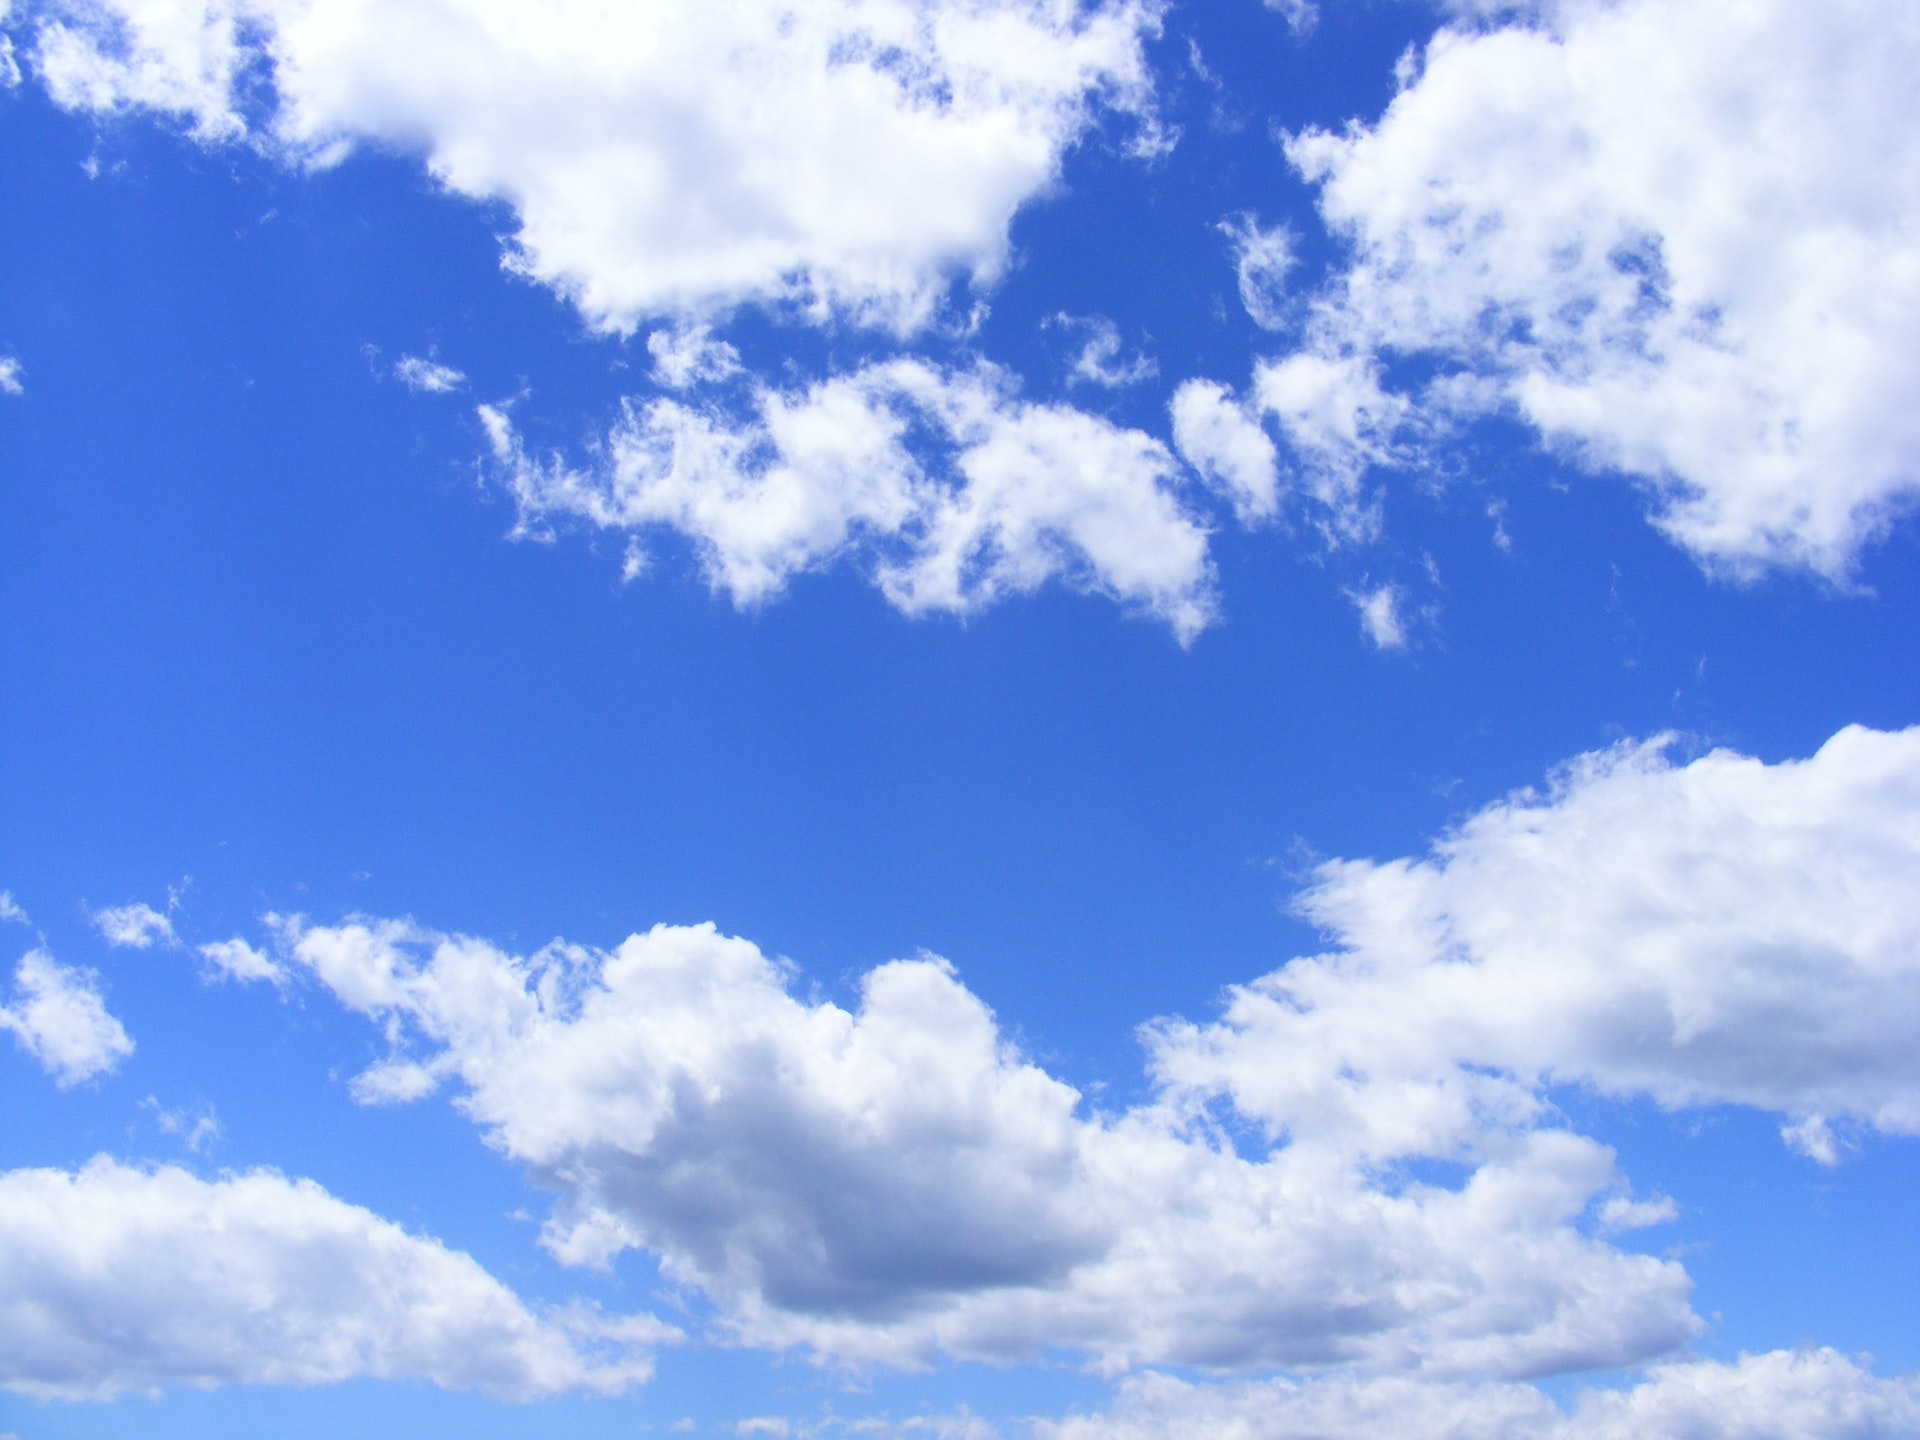 blue-clouds-day-53594